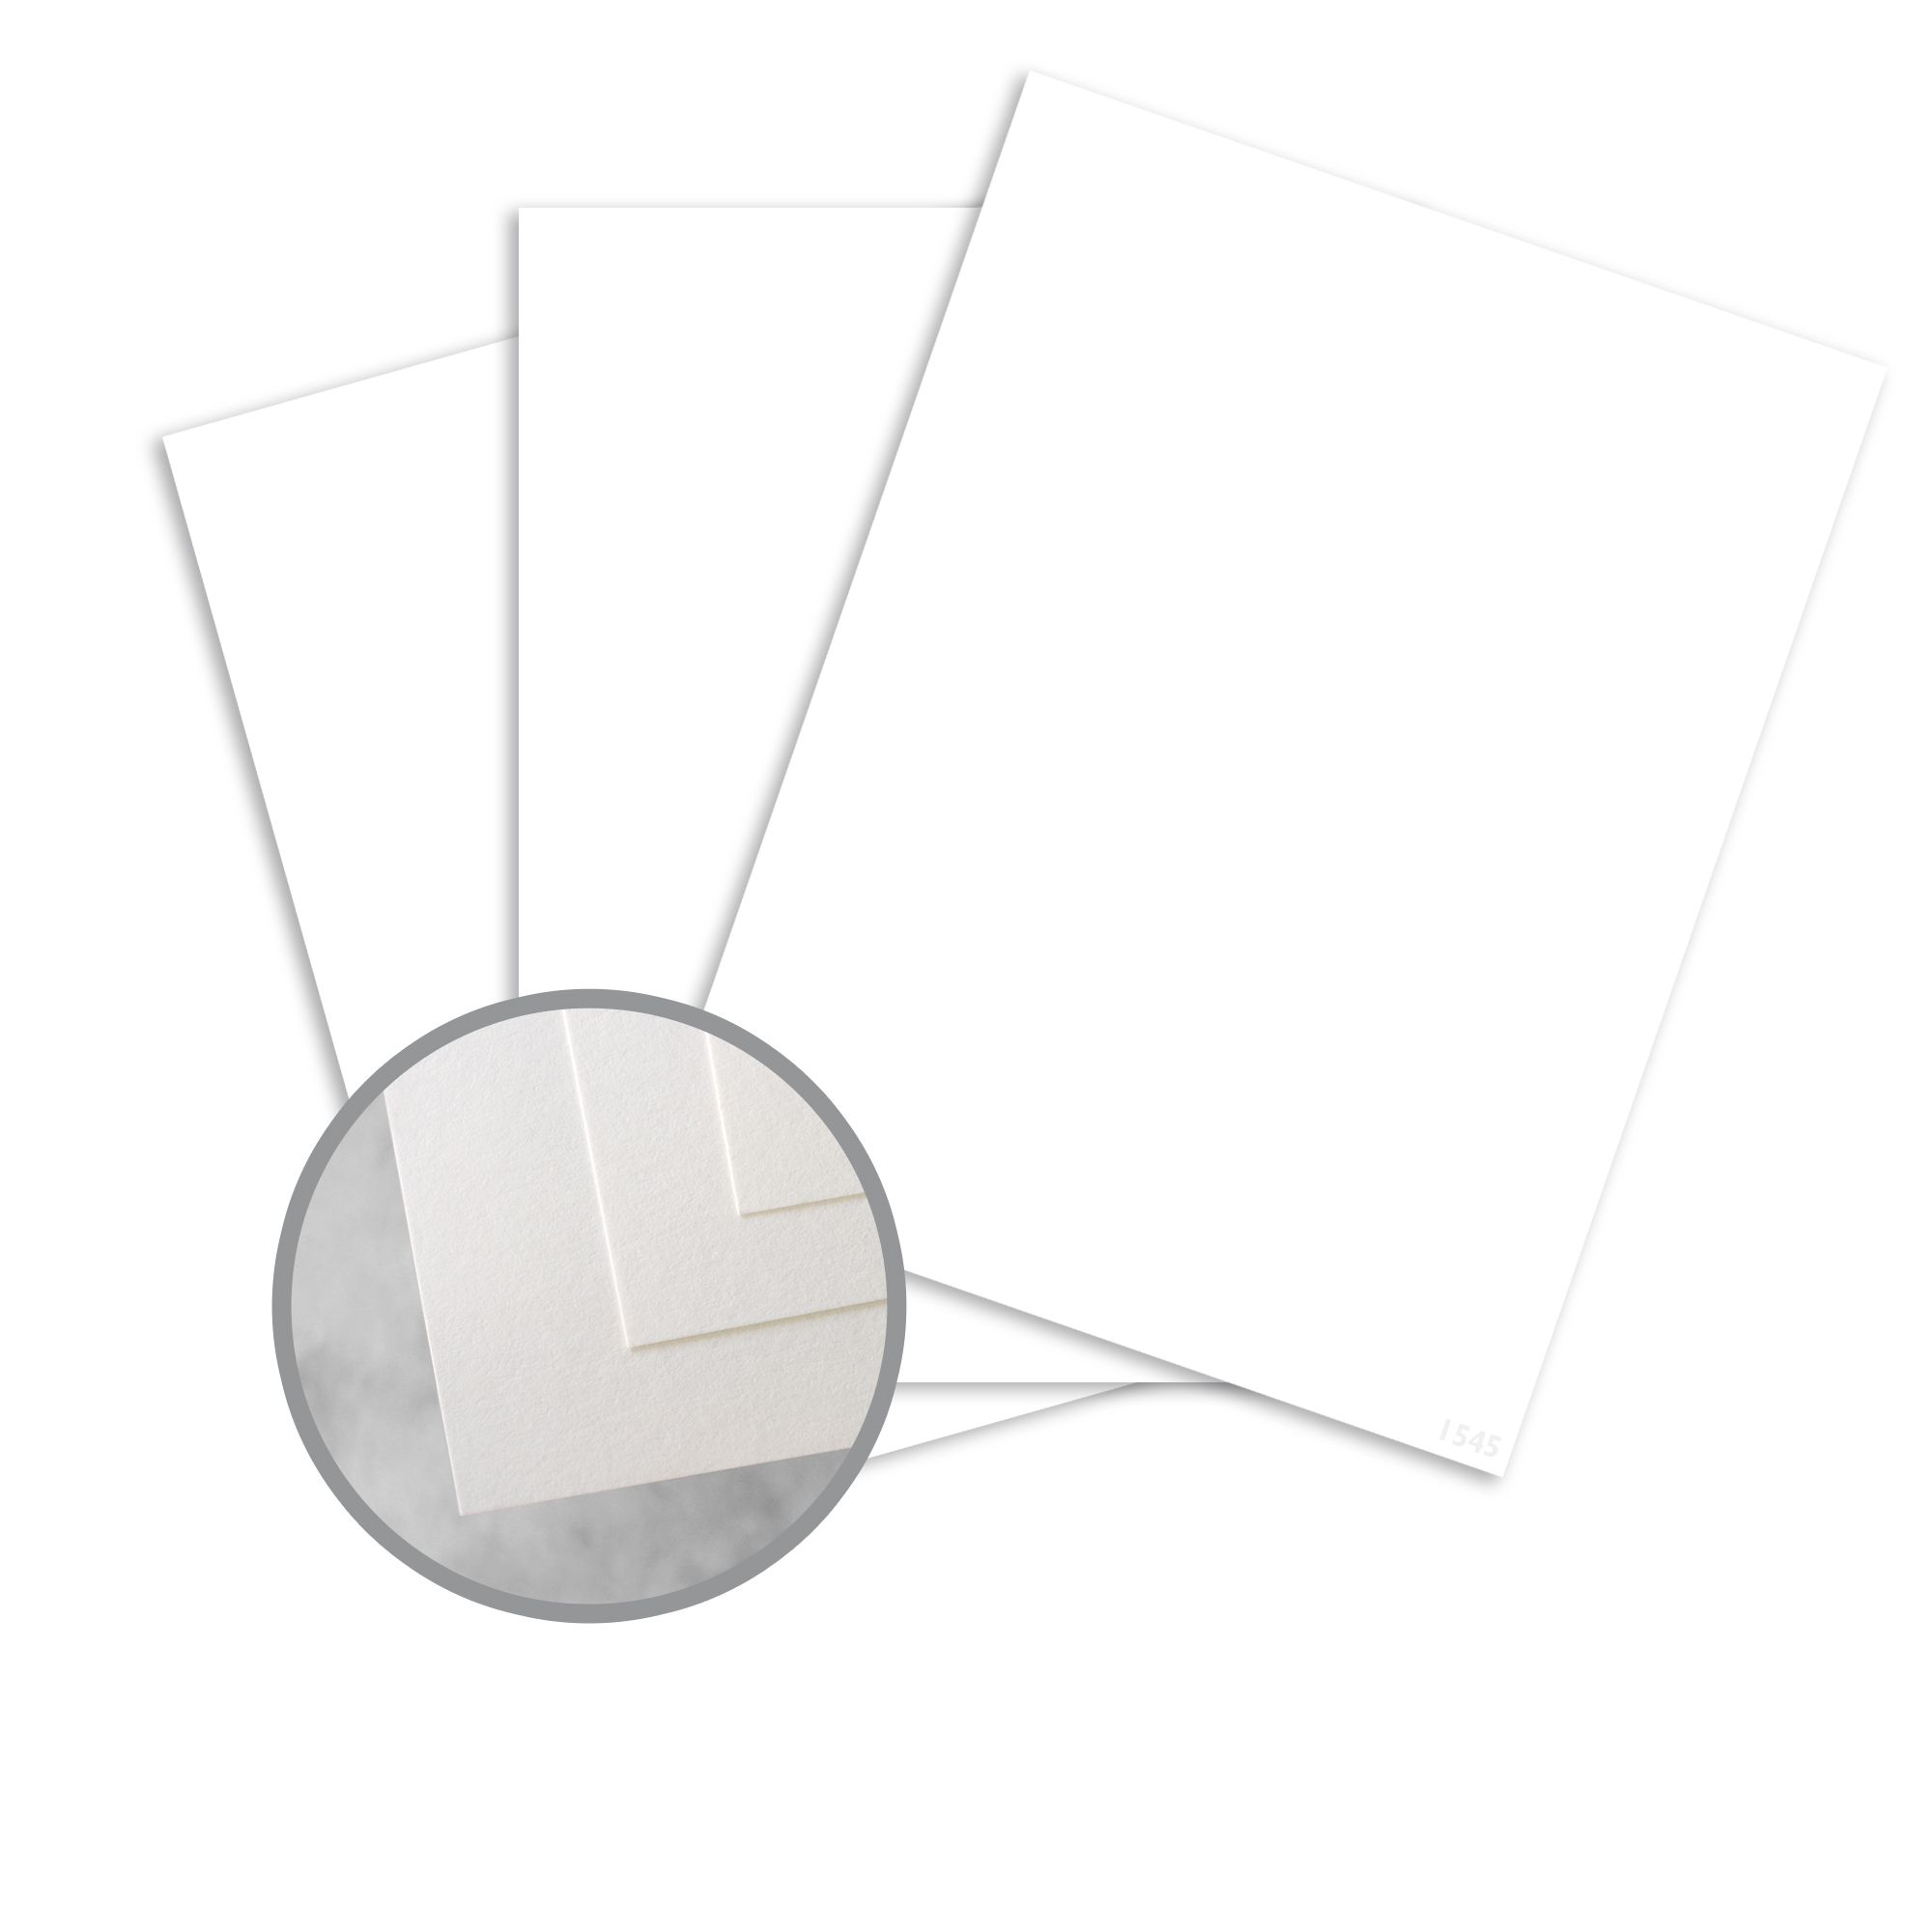 110 lb 8-1//2 x 11 Inches Assorted Colors 250 Sheets Exact Index Cardstock Paper